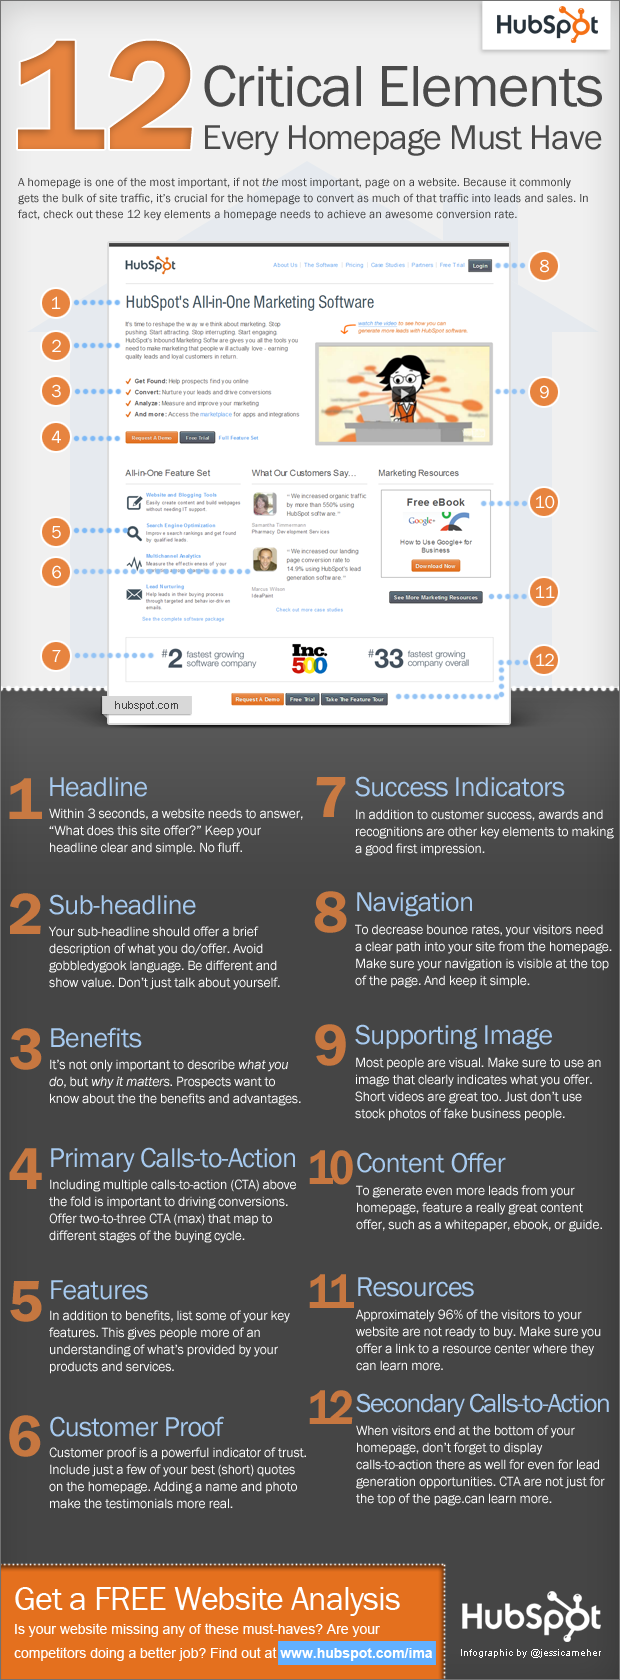 12 Homepage Elements HubSpot Infographic